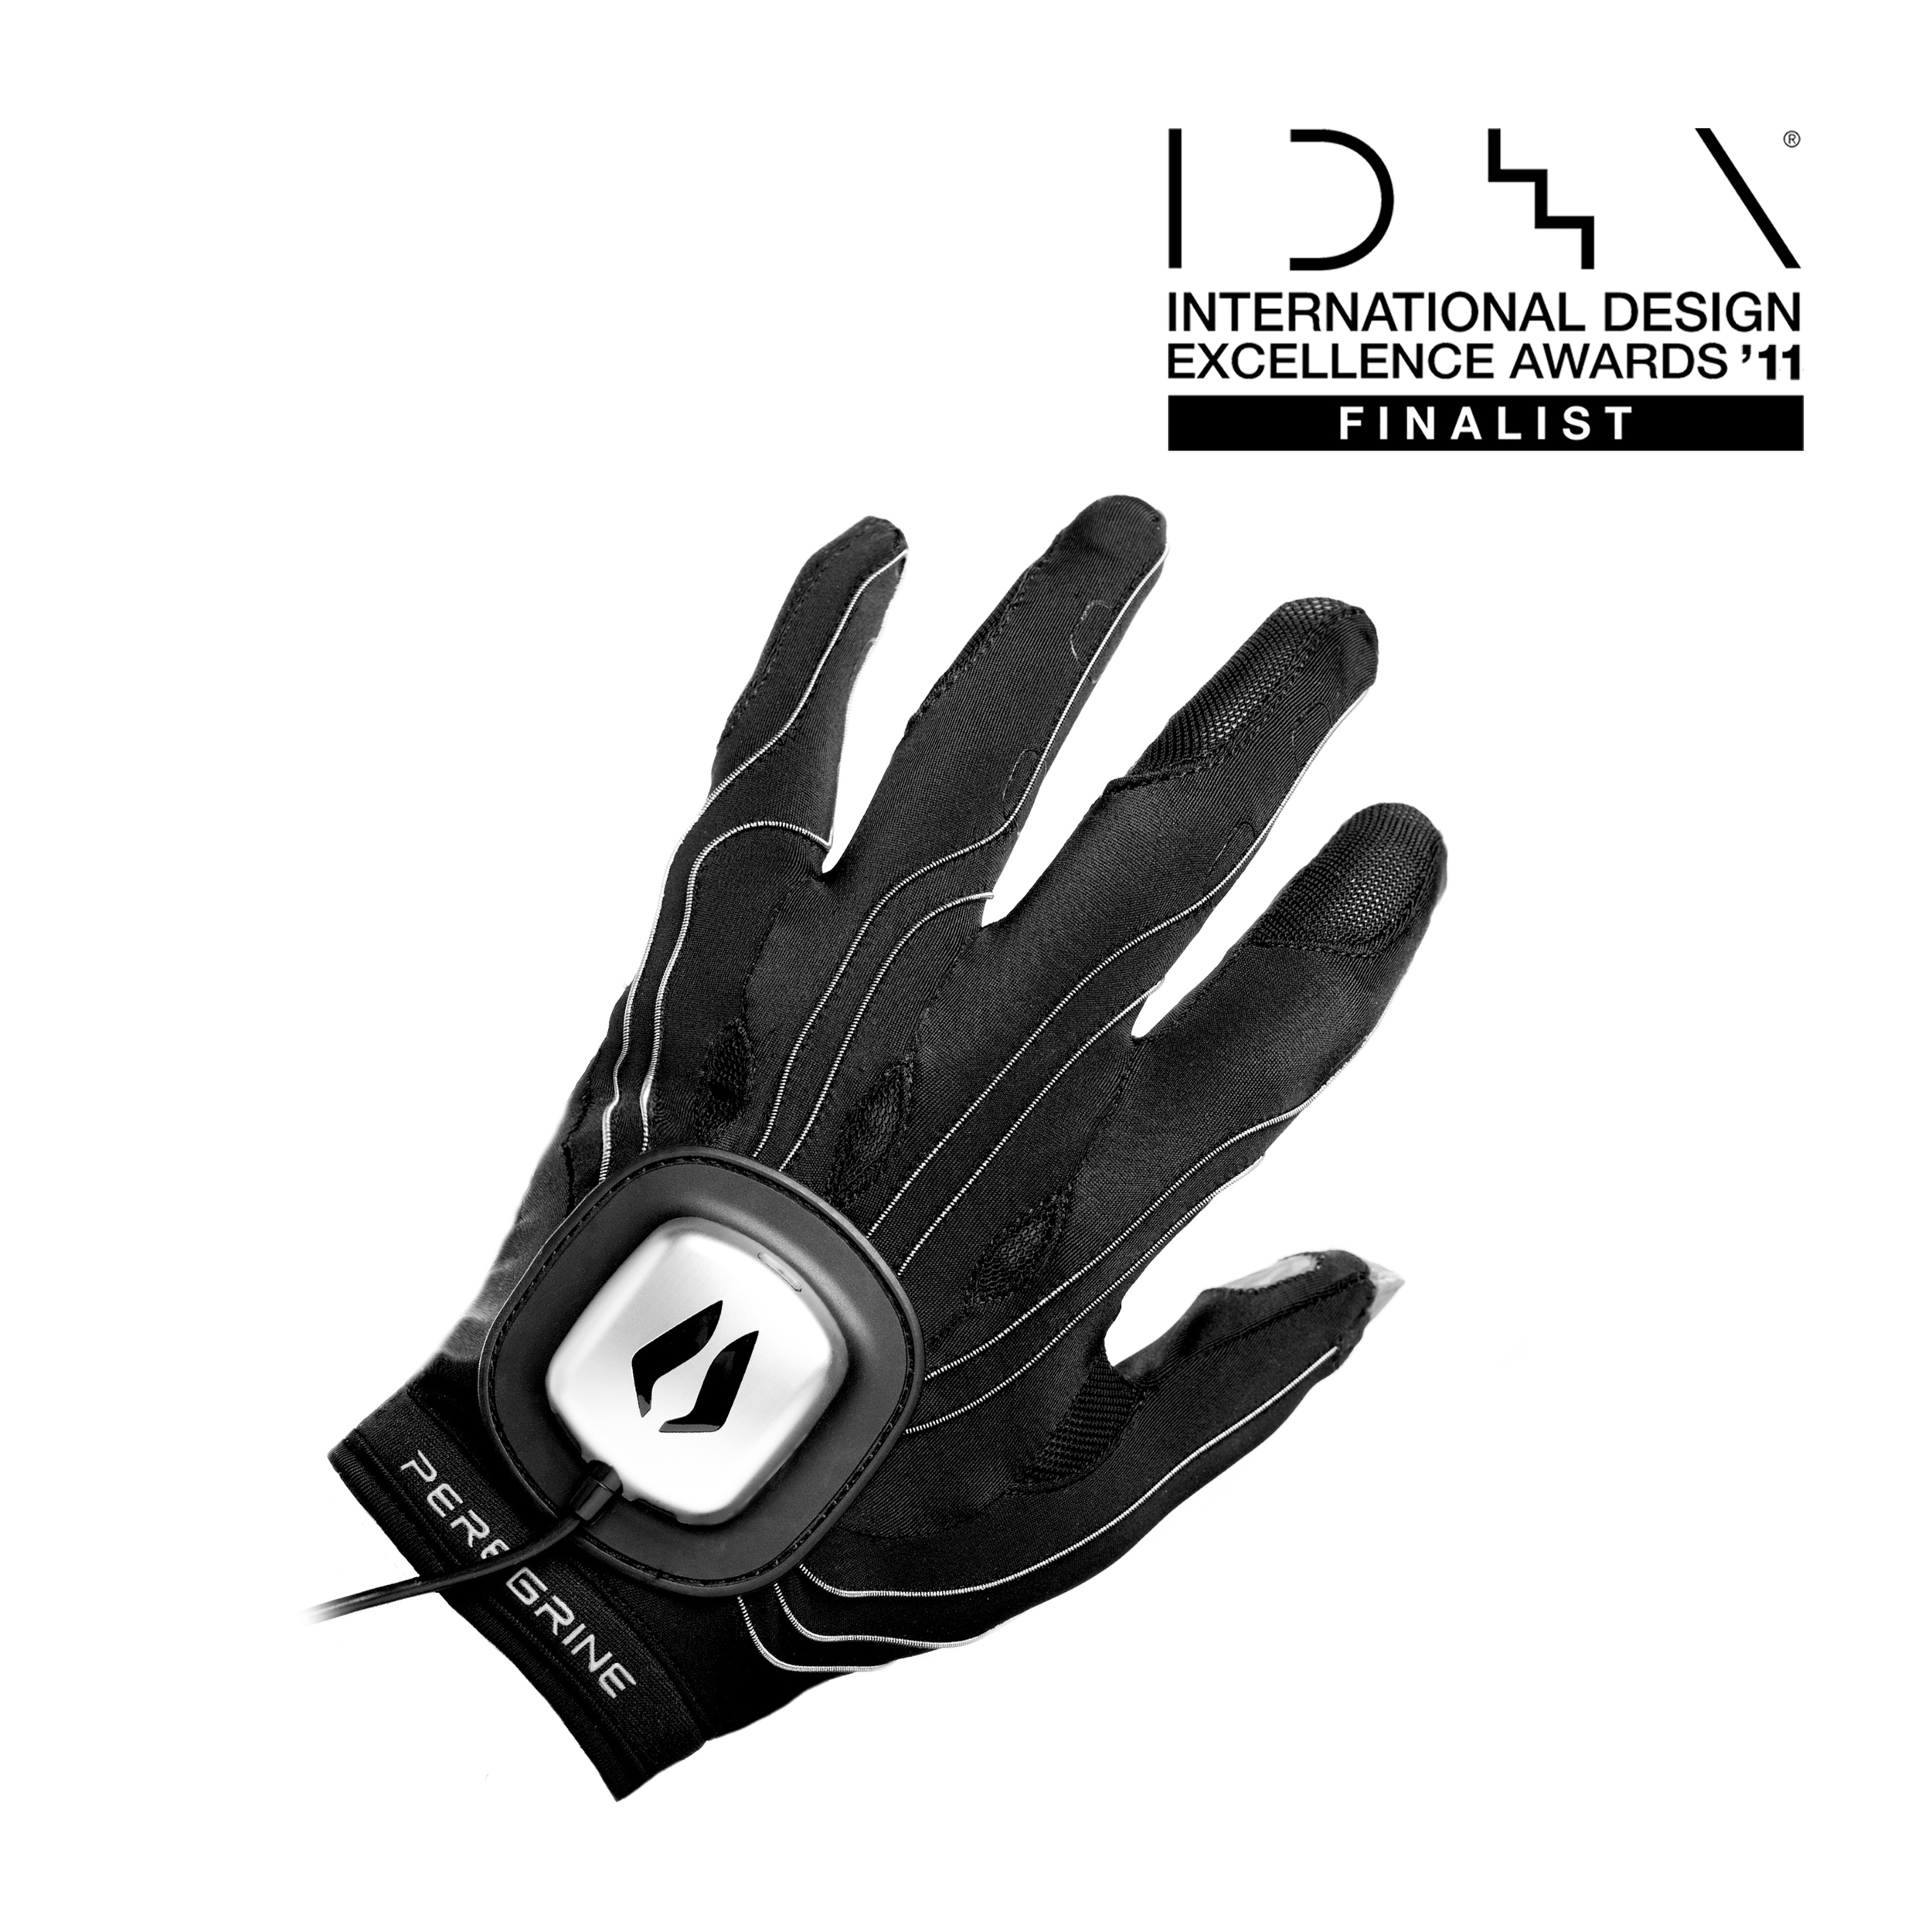 Peregrine Wearable Interface Gaming Glove   International Design Excellence Awards (IDEA) – Finalist